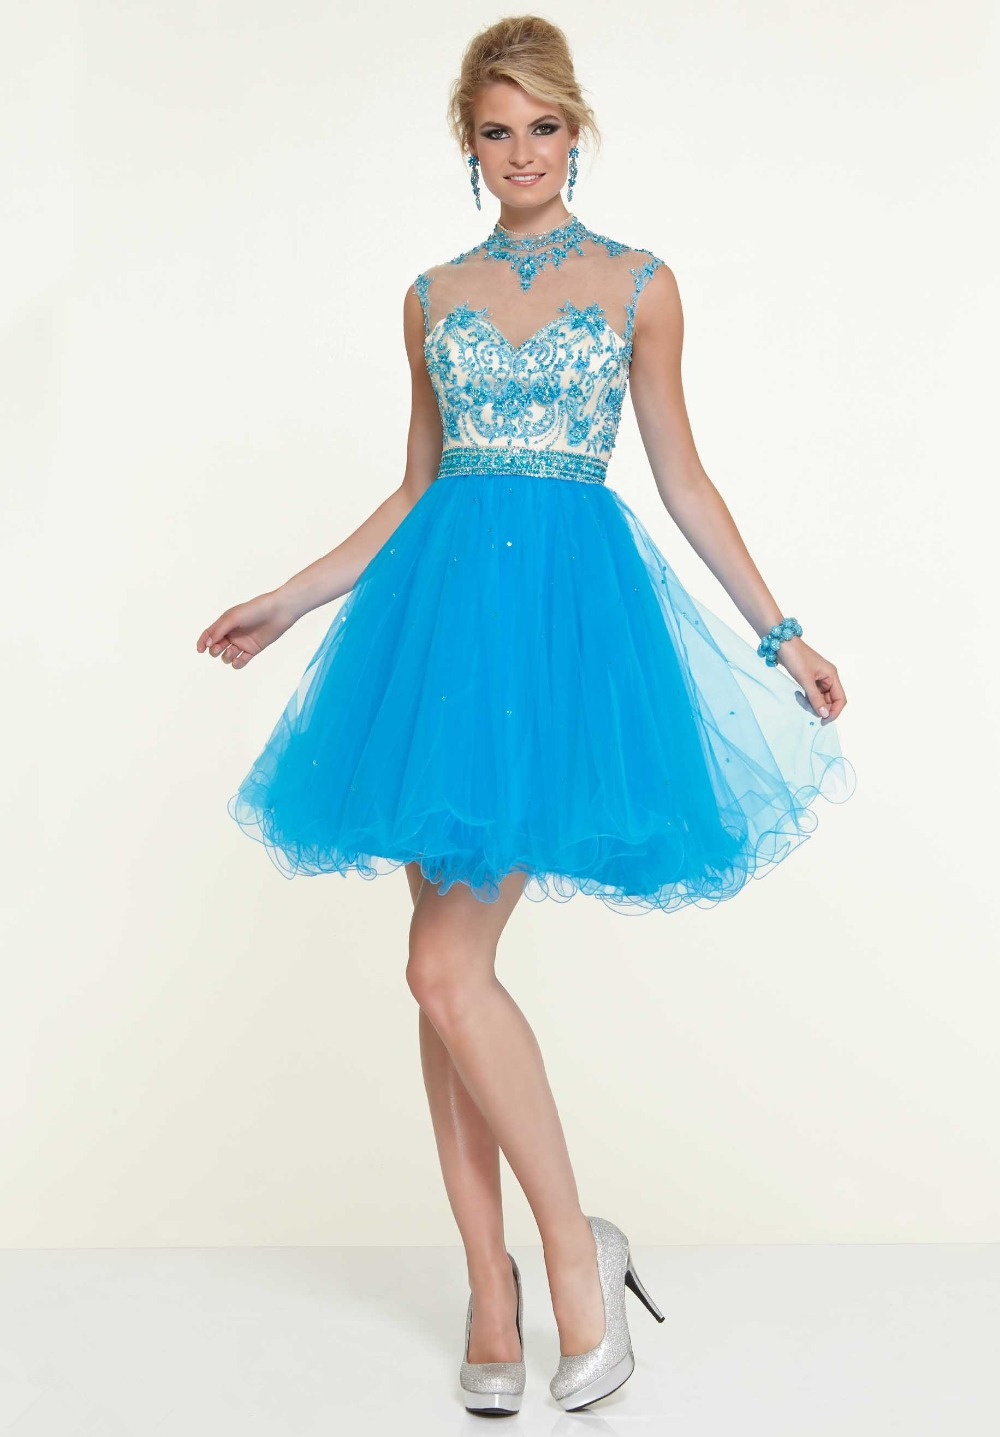 Cheap Prom Dress, find Prom Dress deals on line at Alibaba.com